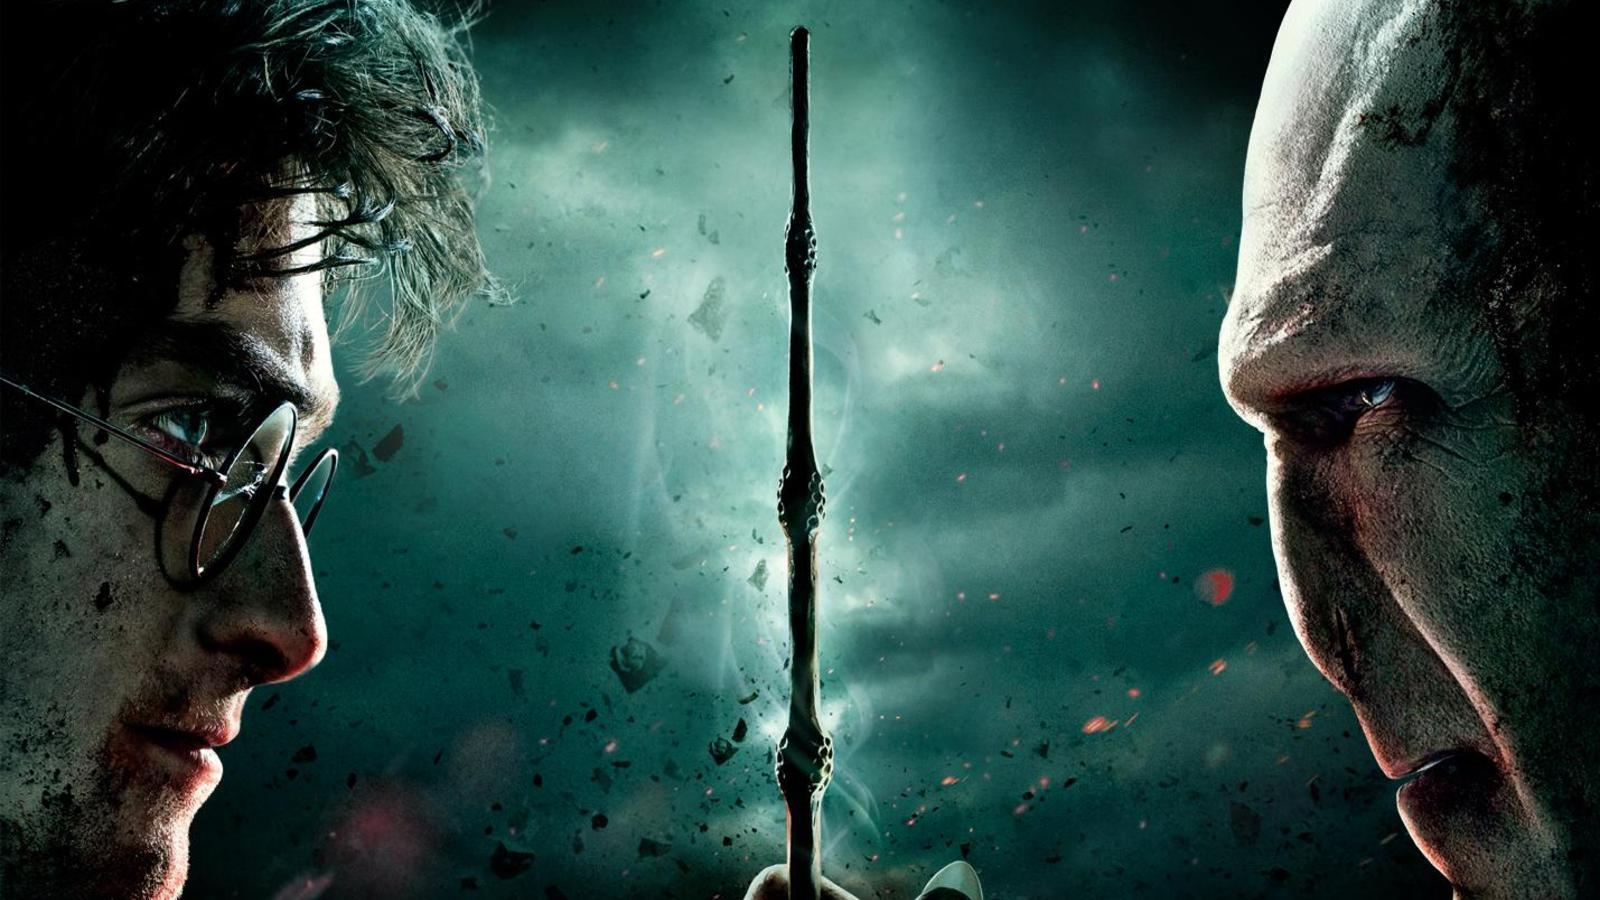 10 harry potter hidden gems youve missed the list love 4 the blood line biocorpaavc Choice Image